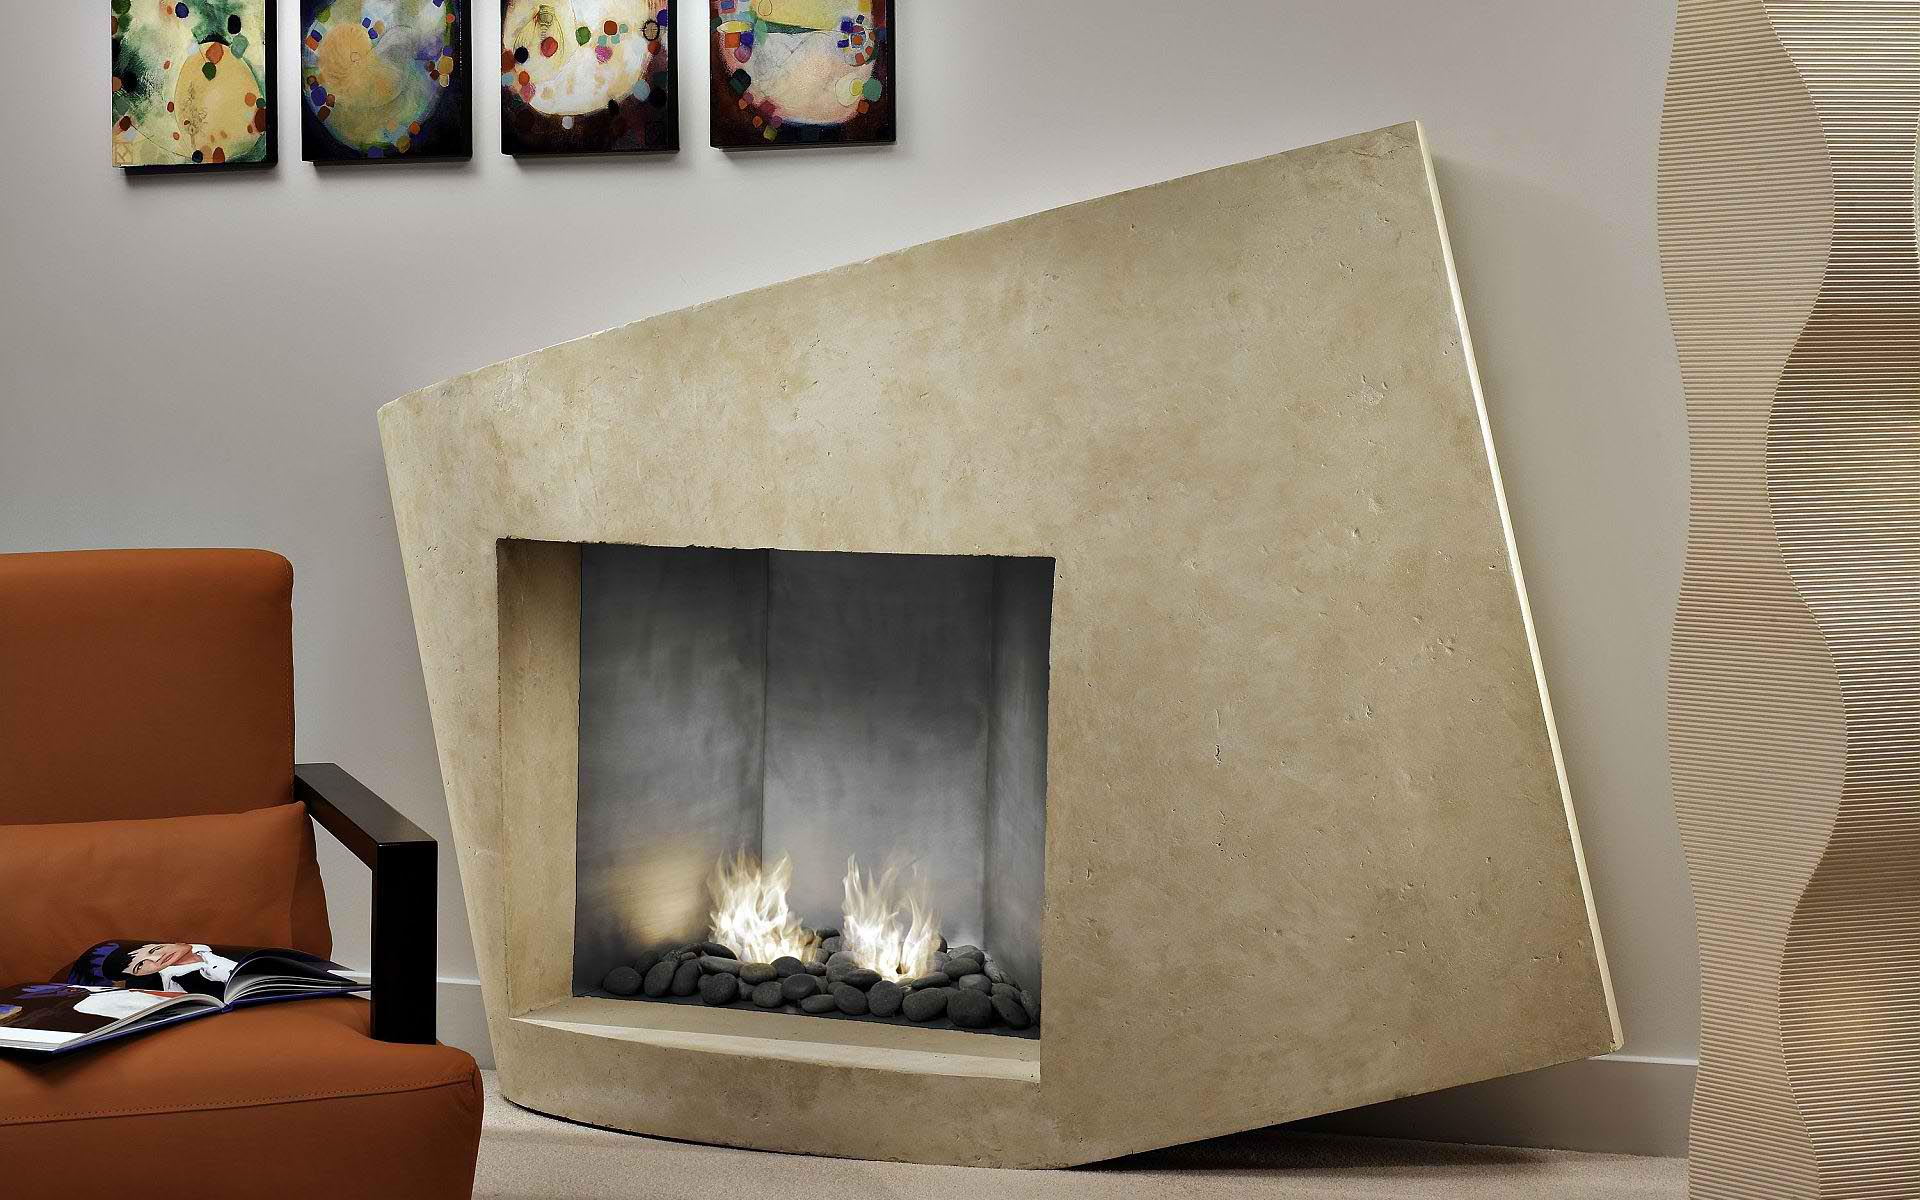 Contemporary Fireplace Surrounds and Mantels